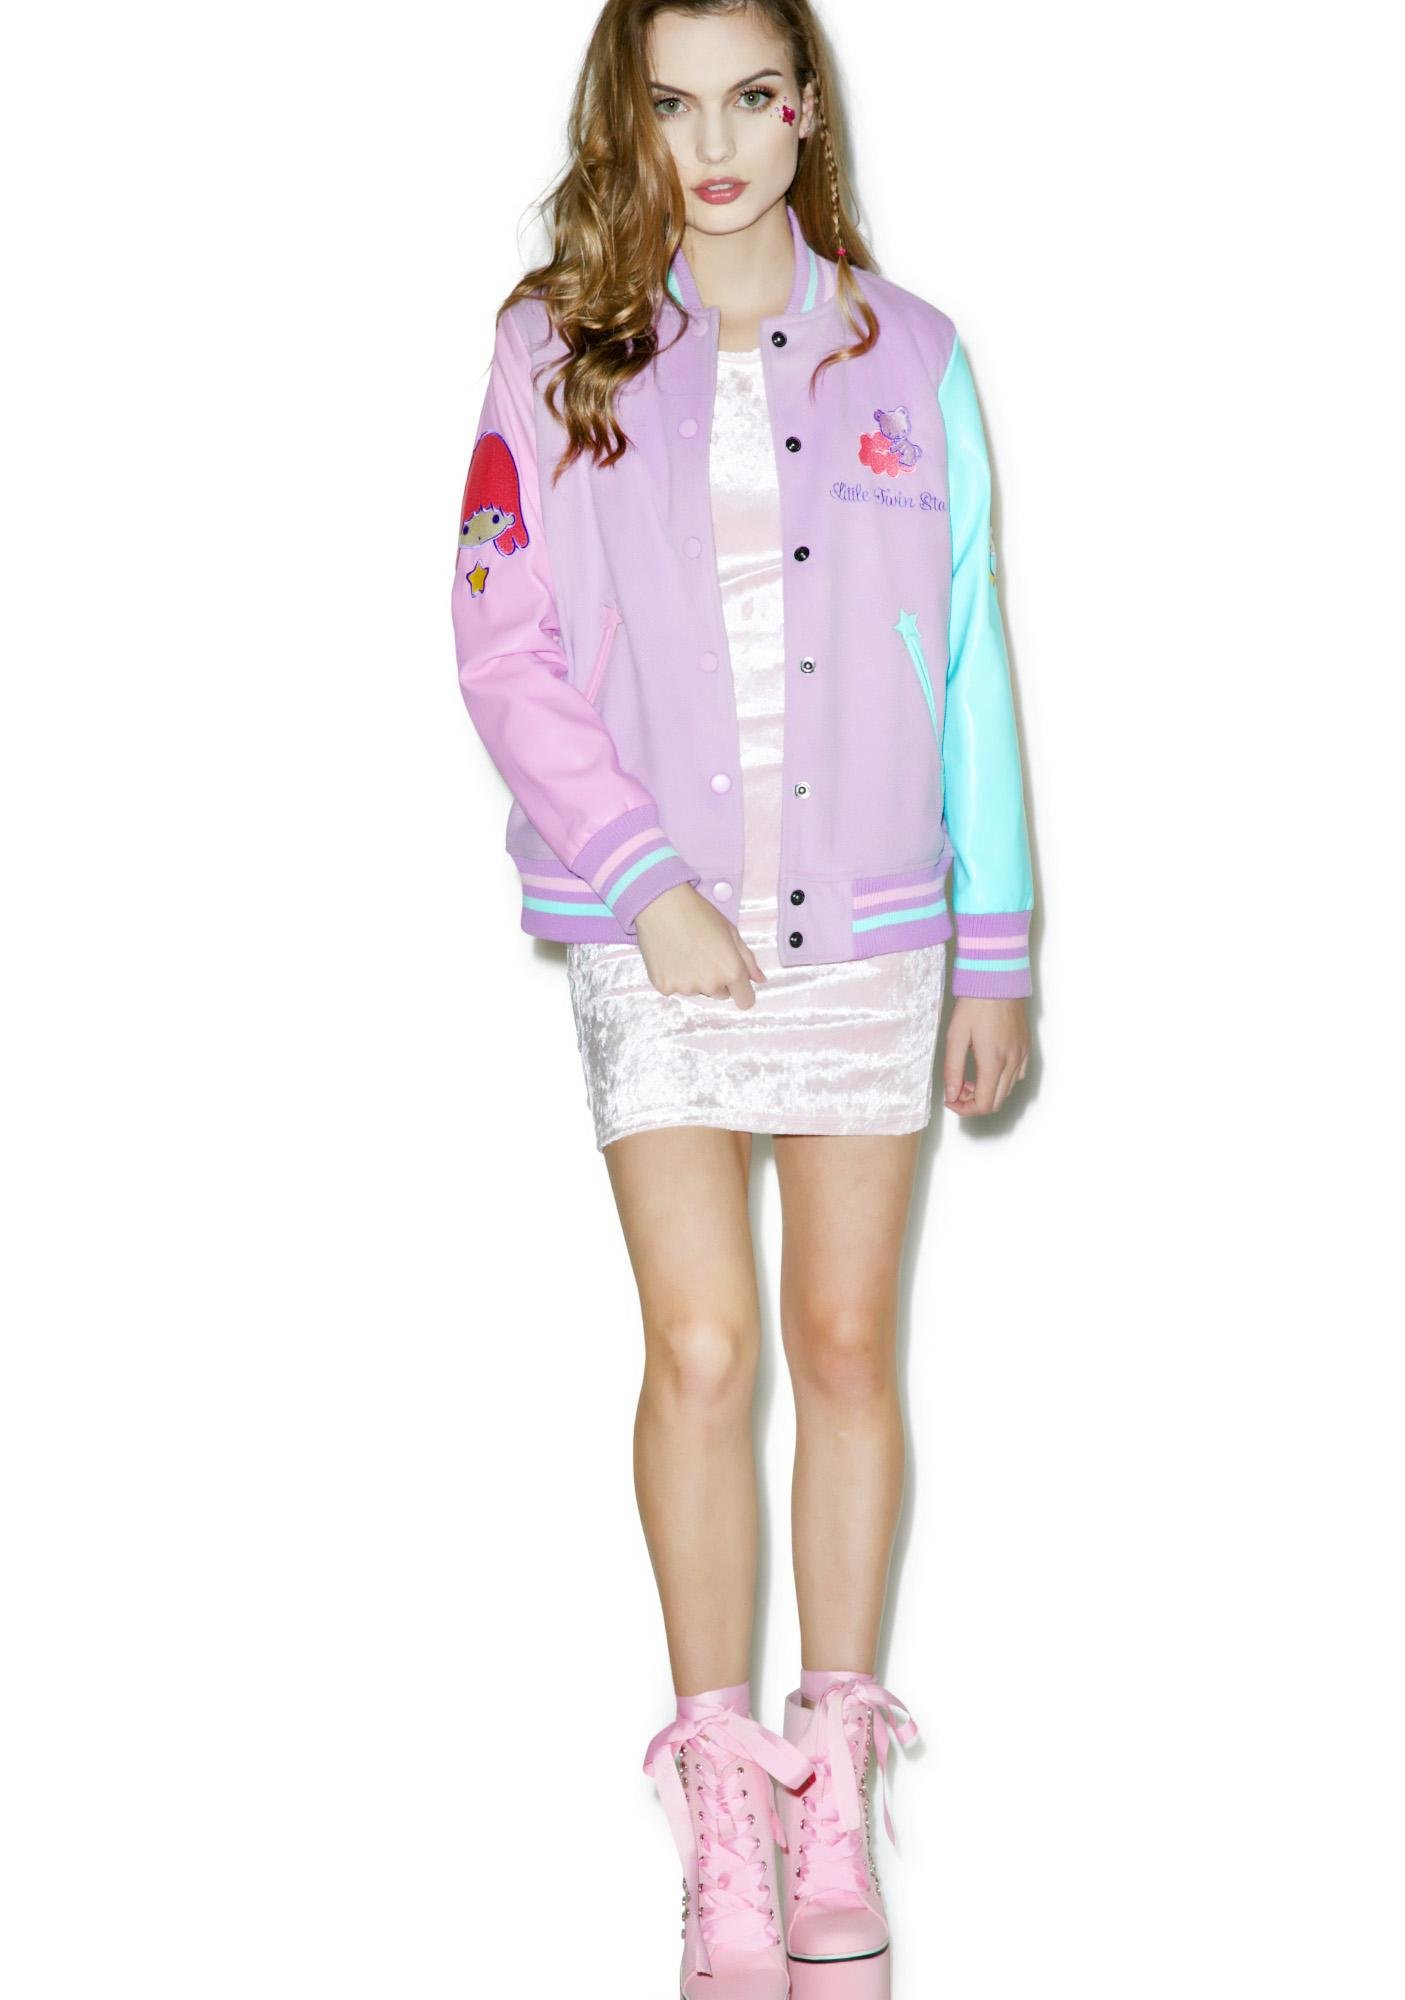 Japan L.A. Little Twin Stars Varsity Jacket